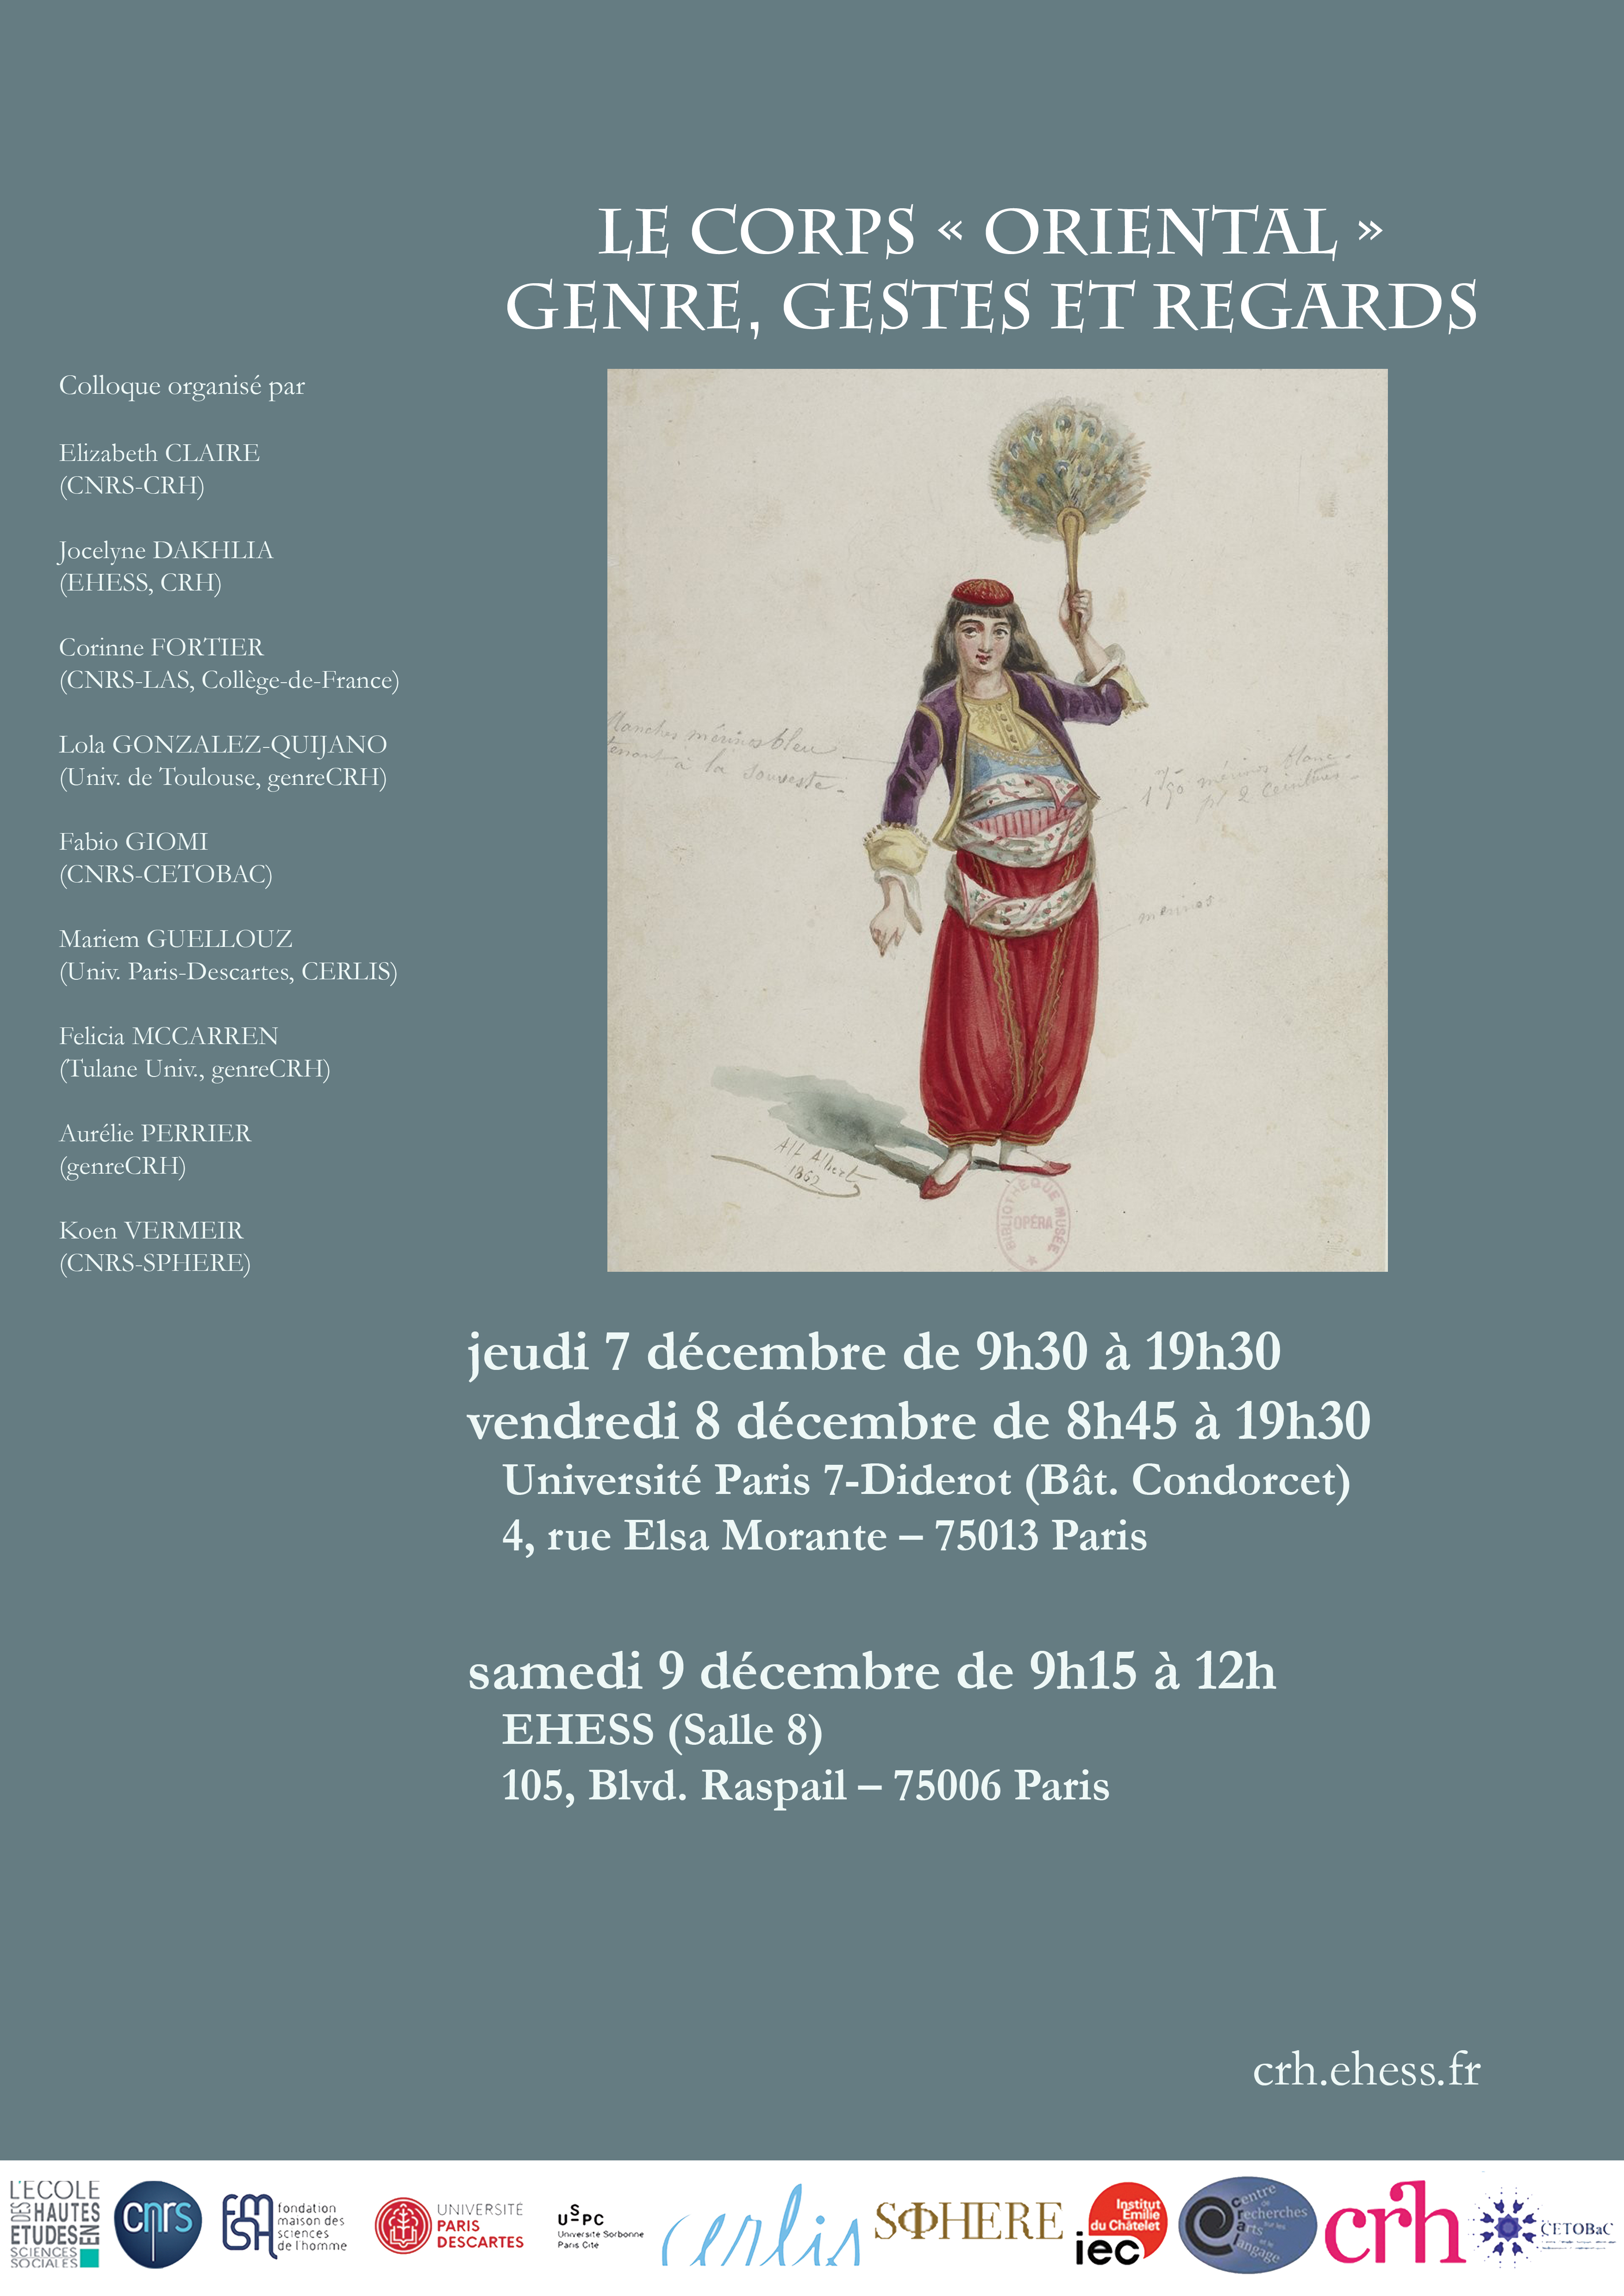 COLLOQUE INTERNATIONAL : « Corps « Oriental »: Genre, gestes et regards / 'Oriental Bodies and the Performance of Gender », du 07 au 09 décembre 2017, à l'Université Paris 7-Diderot (Bâtiment Condorcet), 4, rue Elsa Morante 75013 Paris et à l'EHESS (Salle 8), 105 boulevard Raspail 75006 Paris